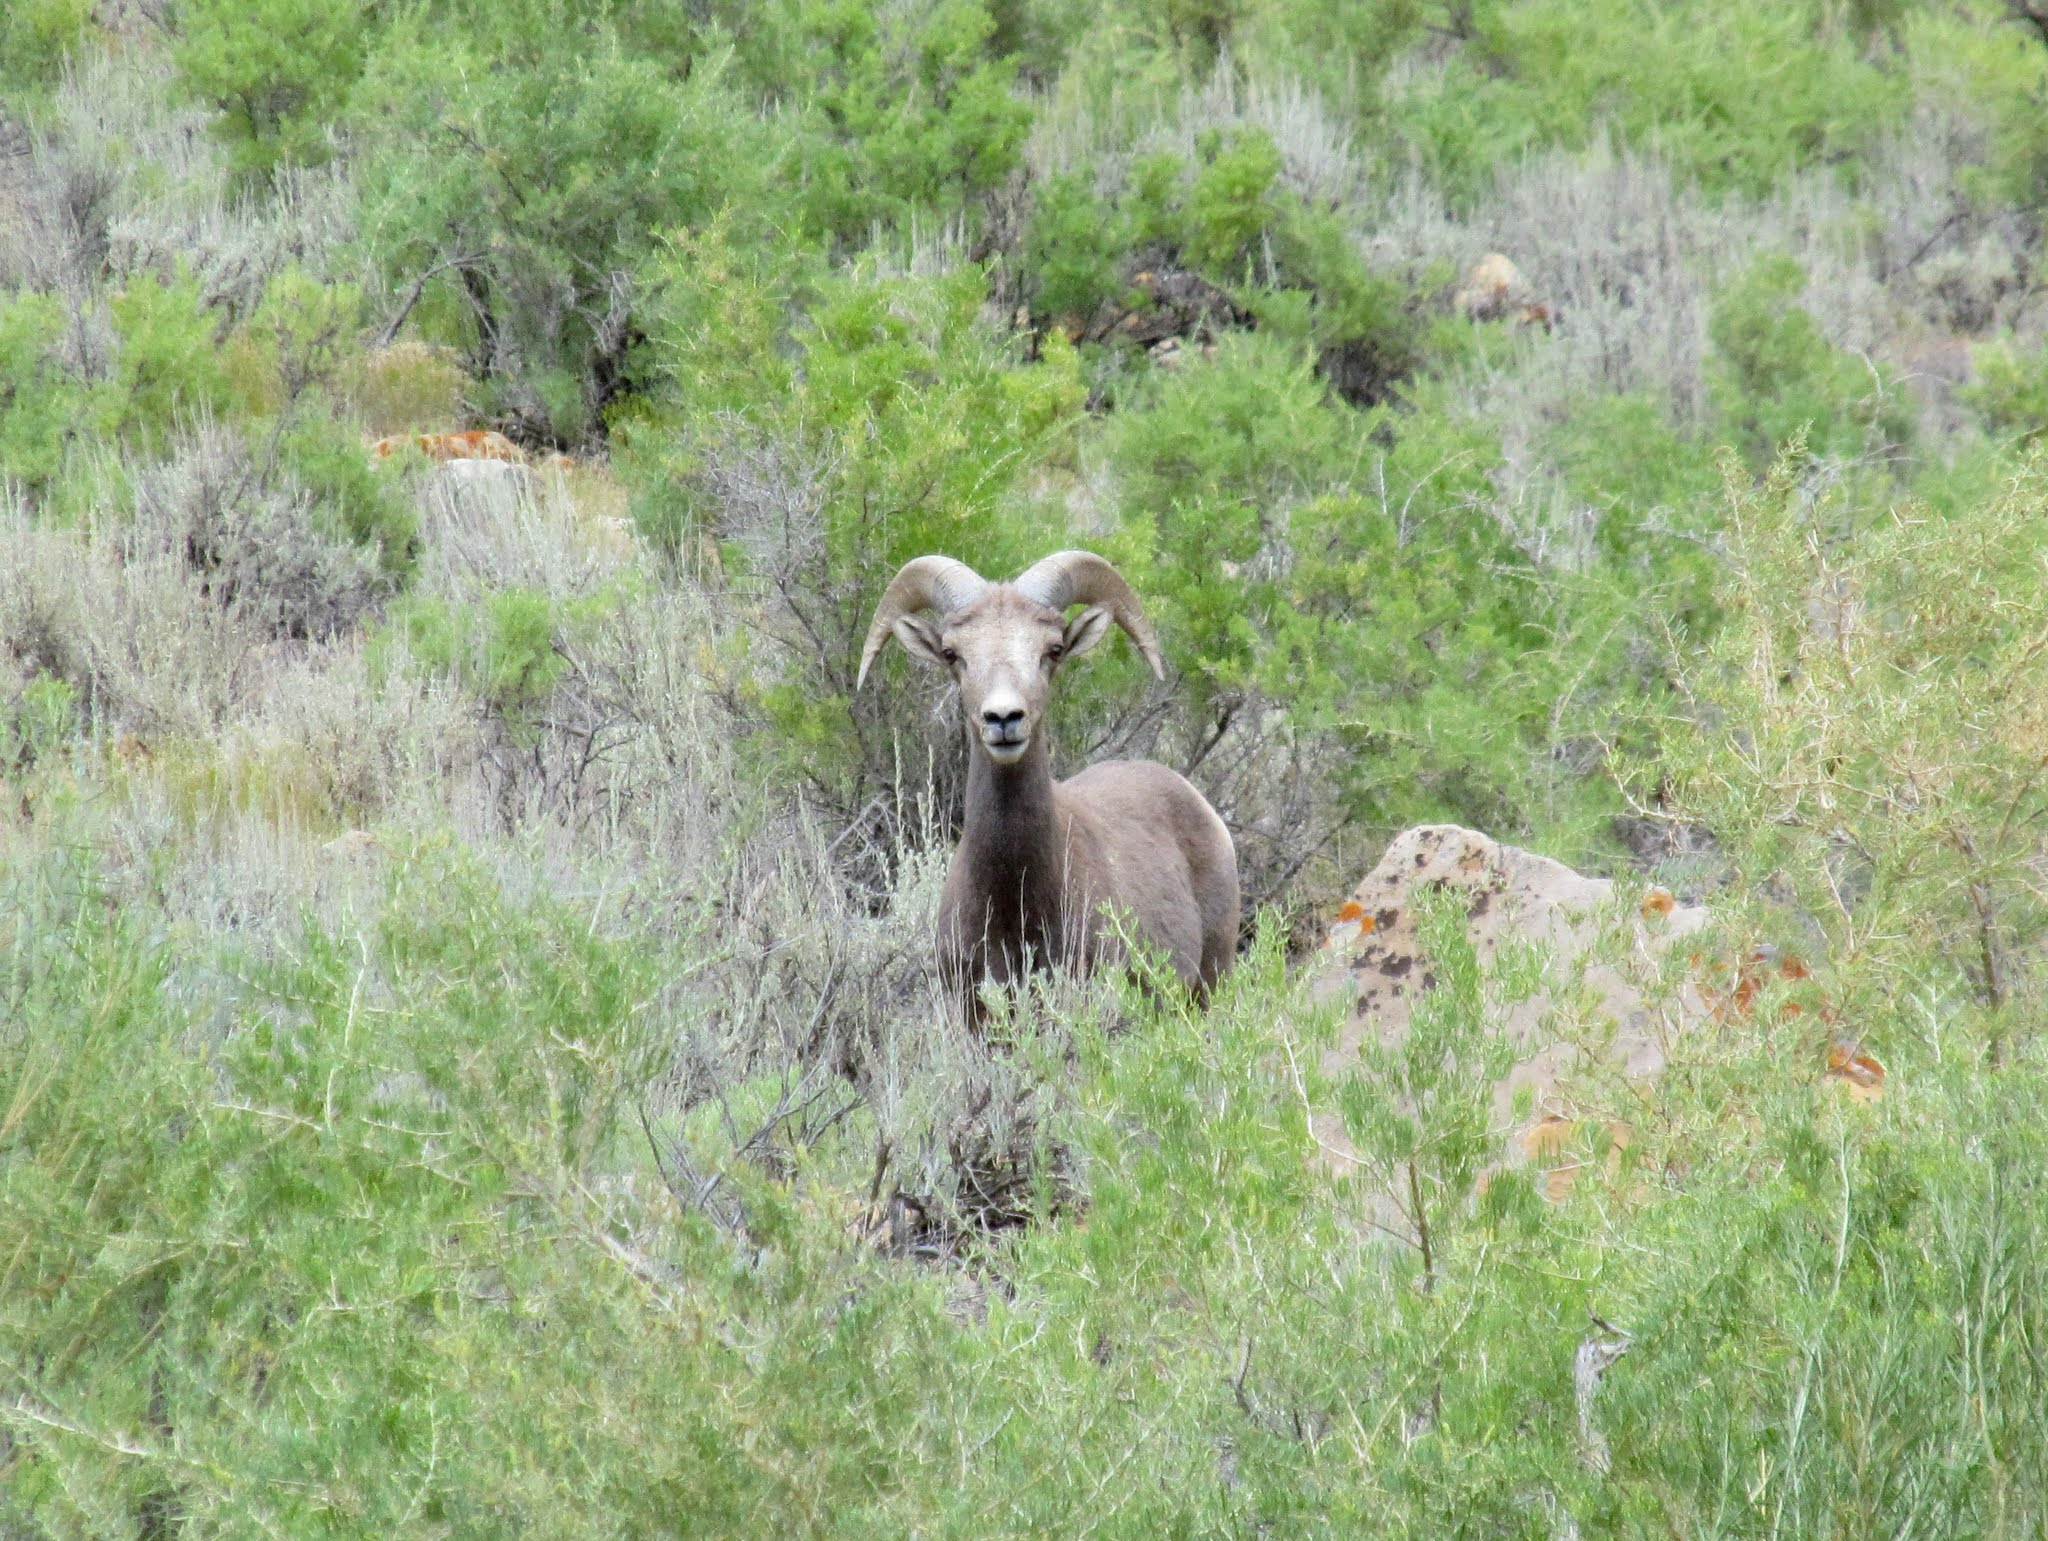 Photo: Bighorn sheep